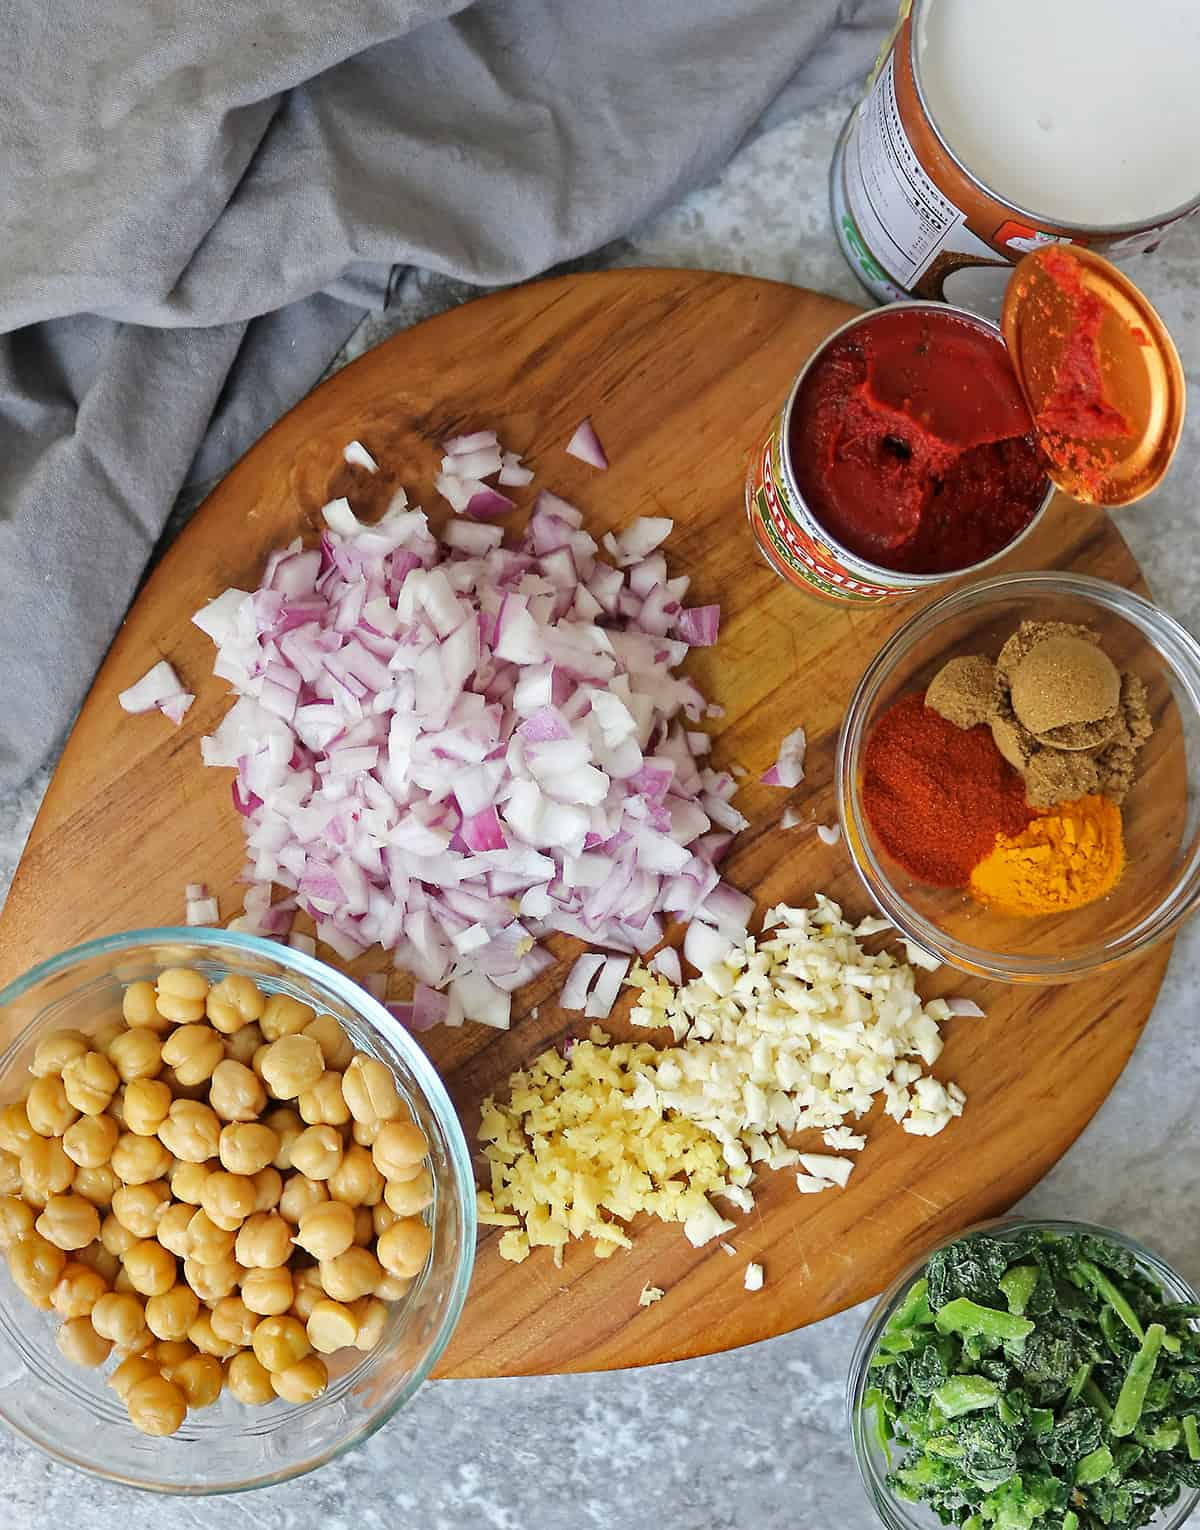 All the Ingredients to make chickpea spinach curry